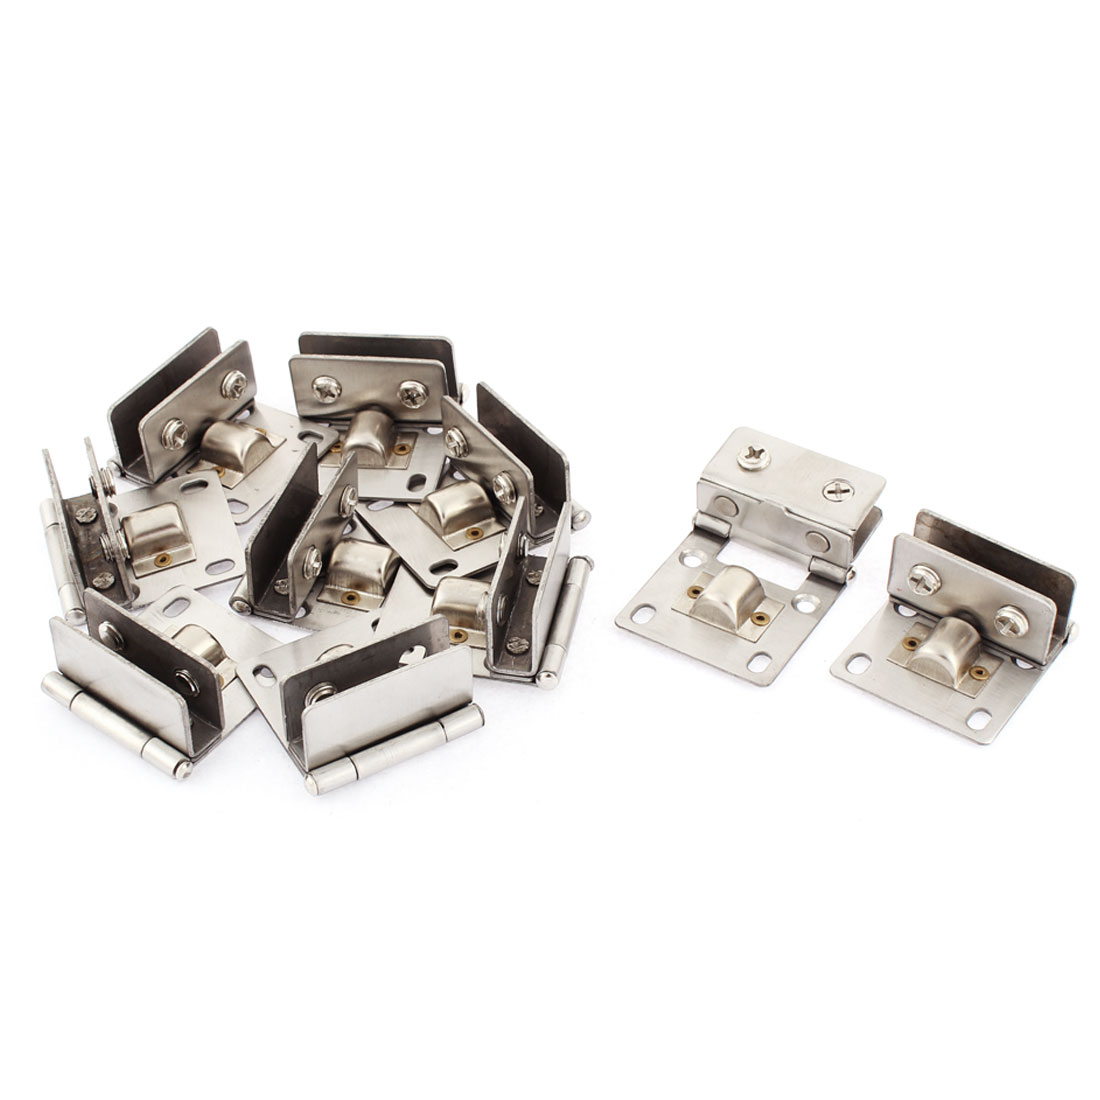 Home Cupboard Cabinet Glass Door 5mm-8mm Thickness Hinge Clamps 10 Pcs